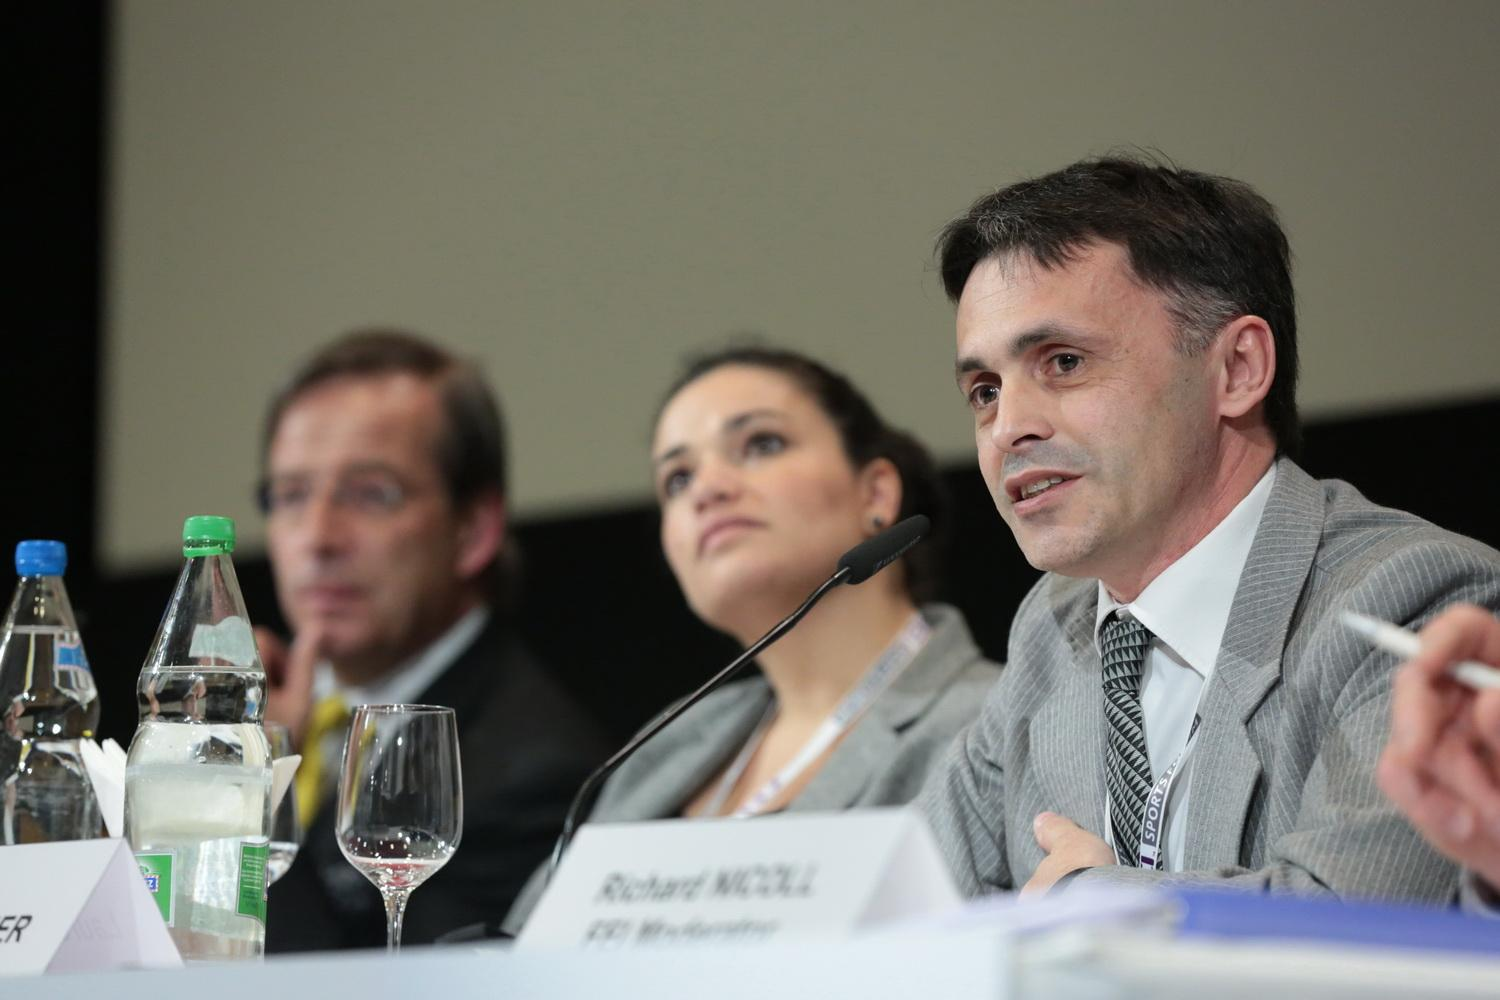 laurent_cellier_at_fei_sports_forum.jpg